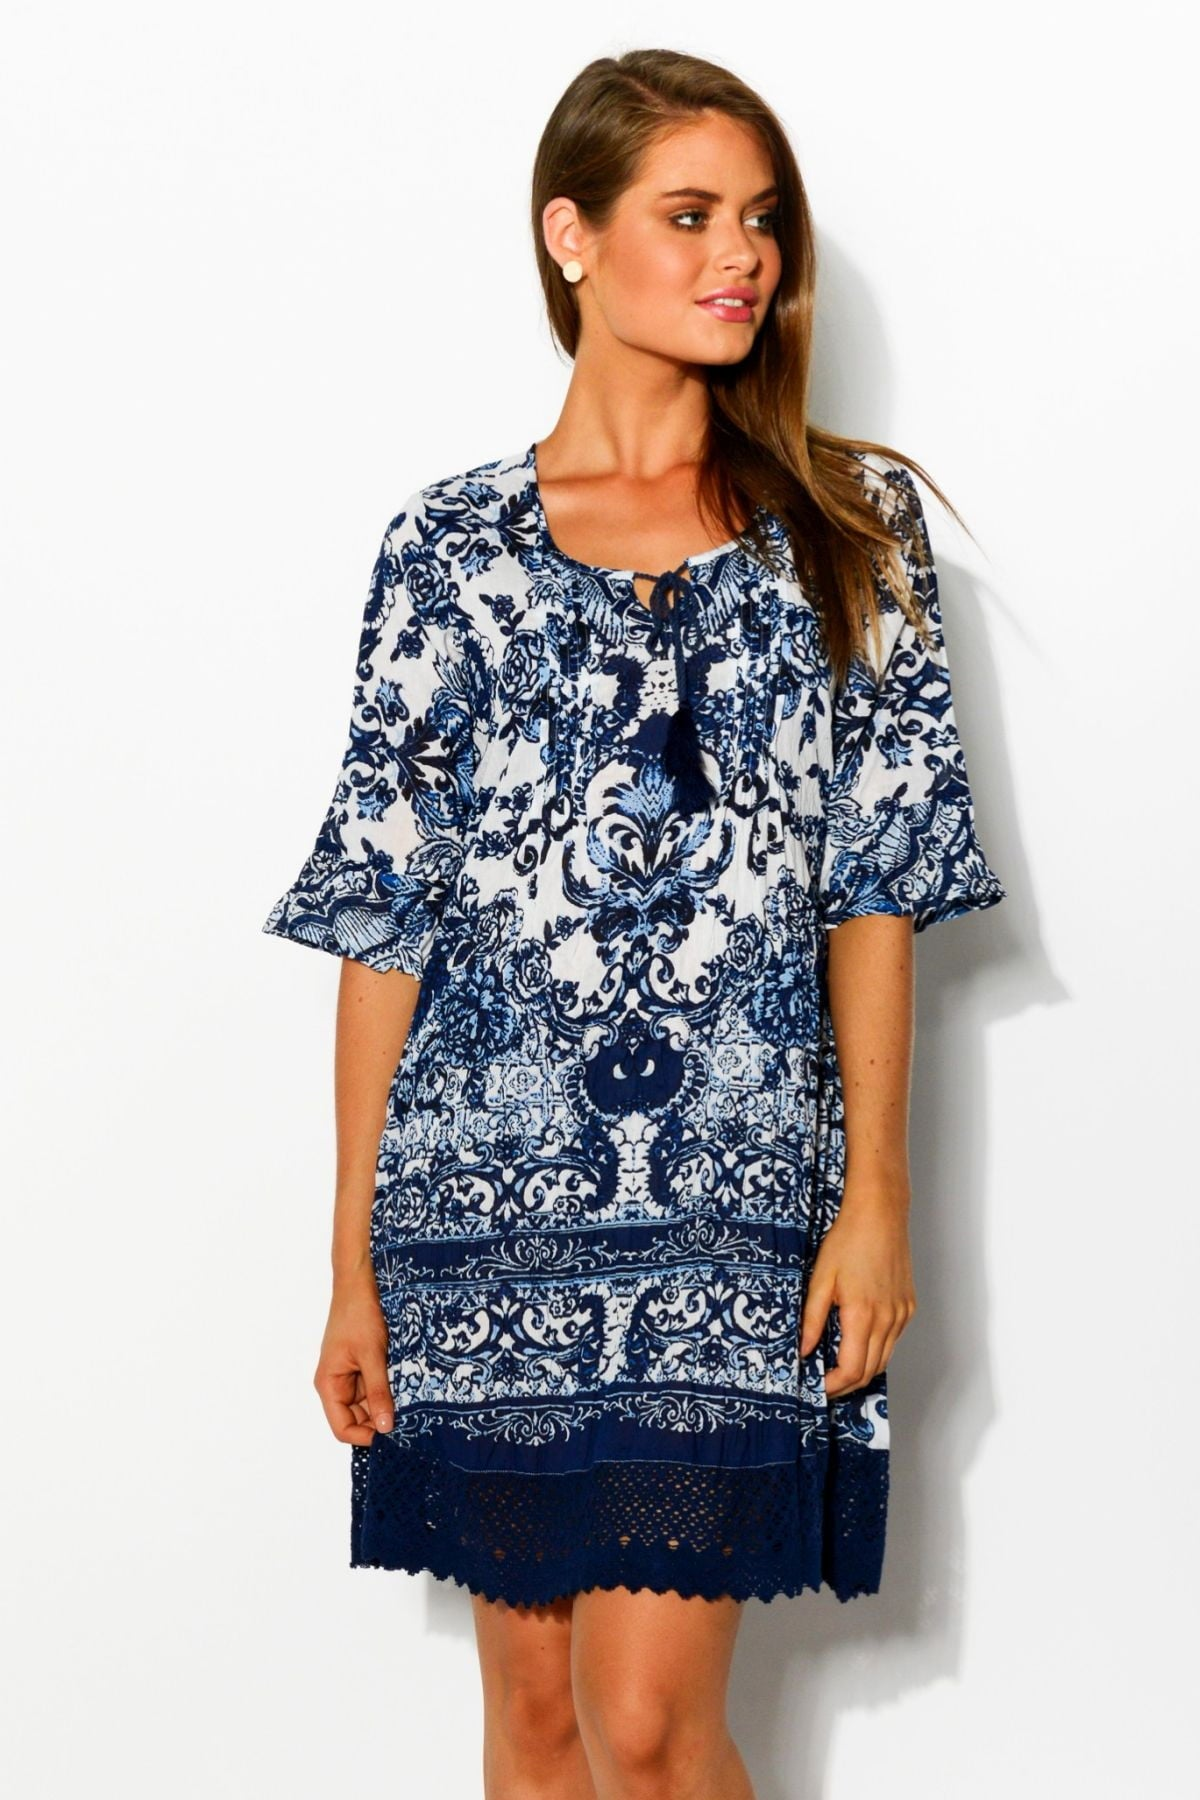 Blue China DWIJ Boho Rayon Tunic Dress | I Love Tunics | Tunic Tops | Tunic Dresses | Women's Tops | Plus Size Australia | Mature Fashion